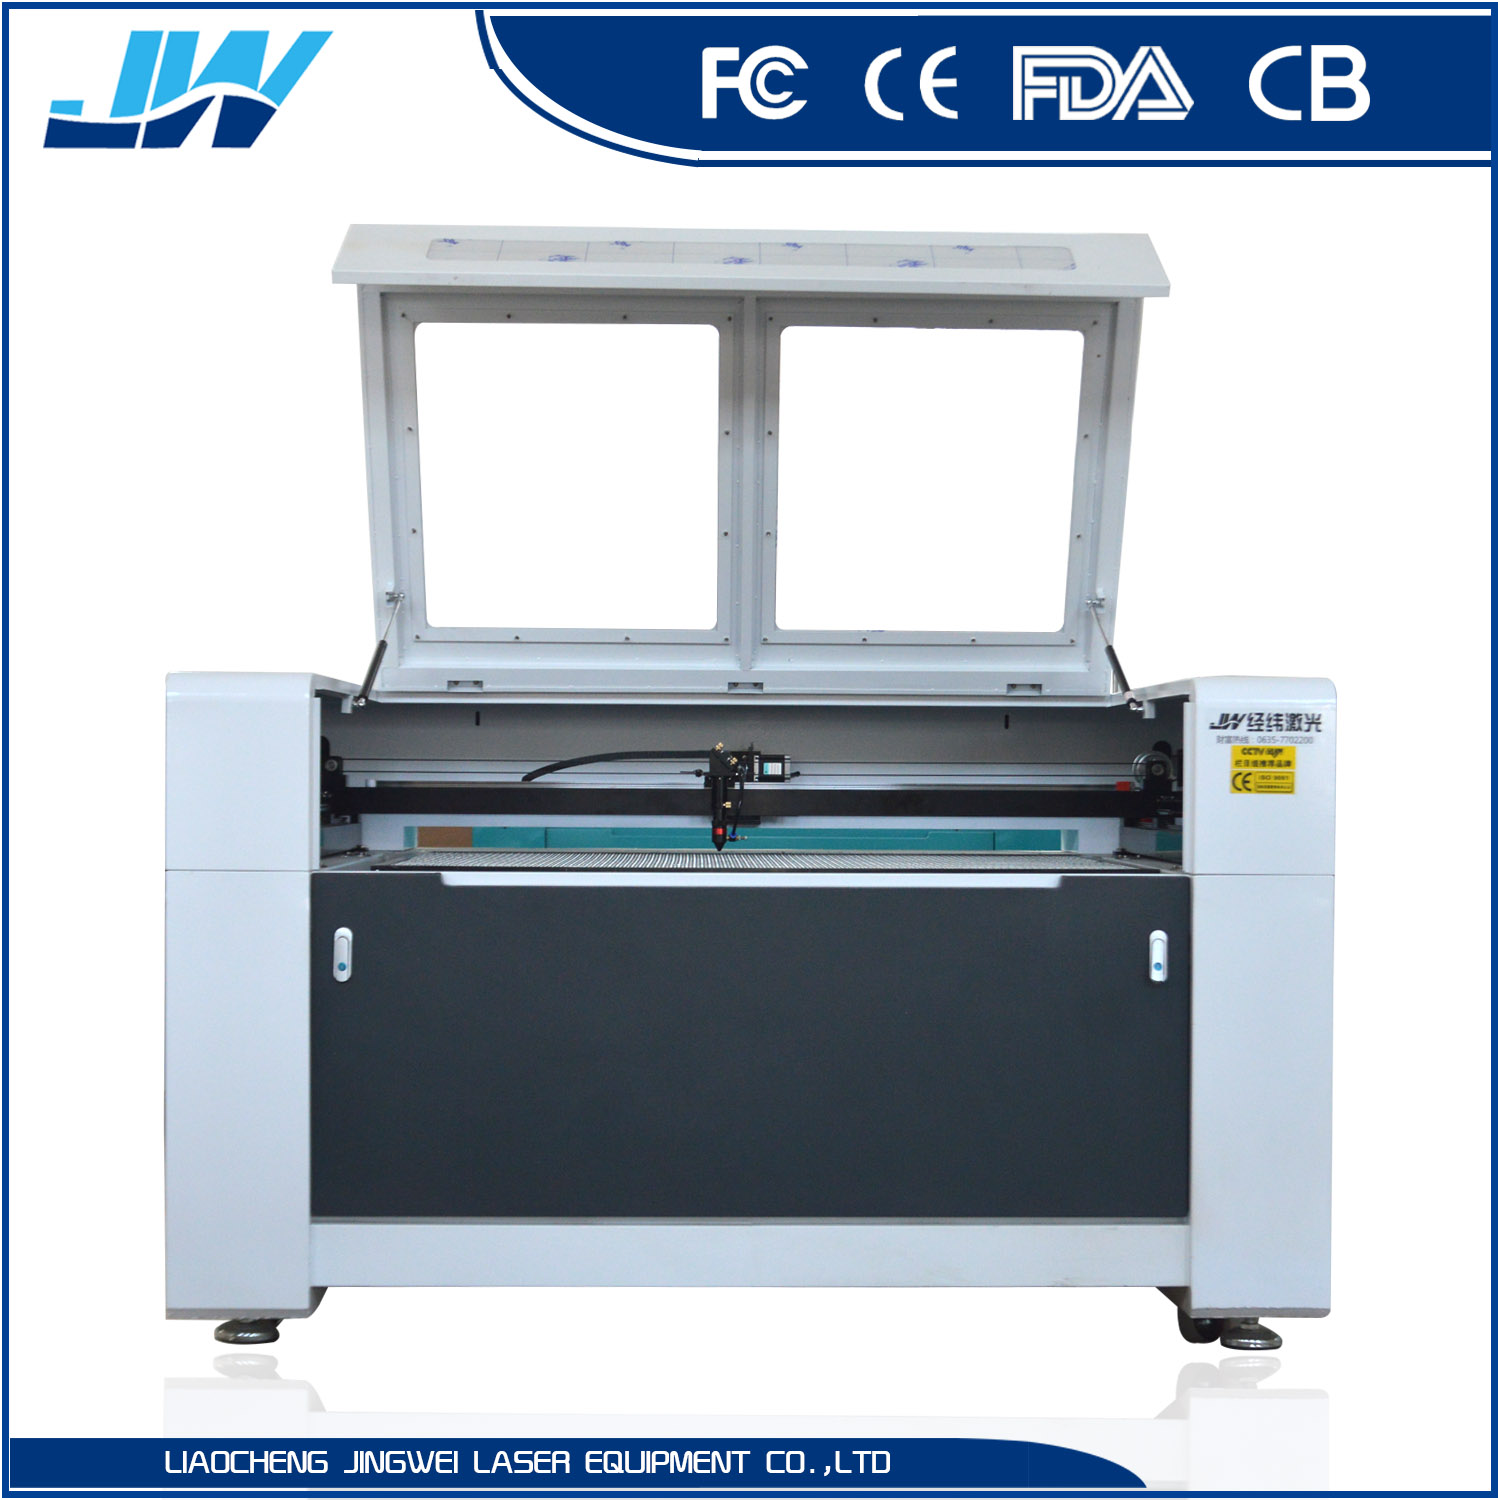 80w 100w 150w 180w 1390 Co2 Laser Cutting machine and laser Engraving Machine For Fabric / Garment / Textile